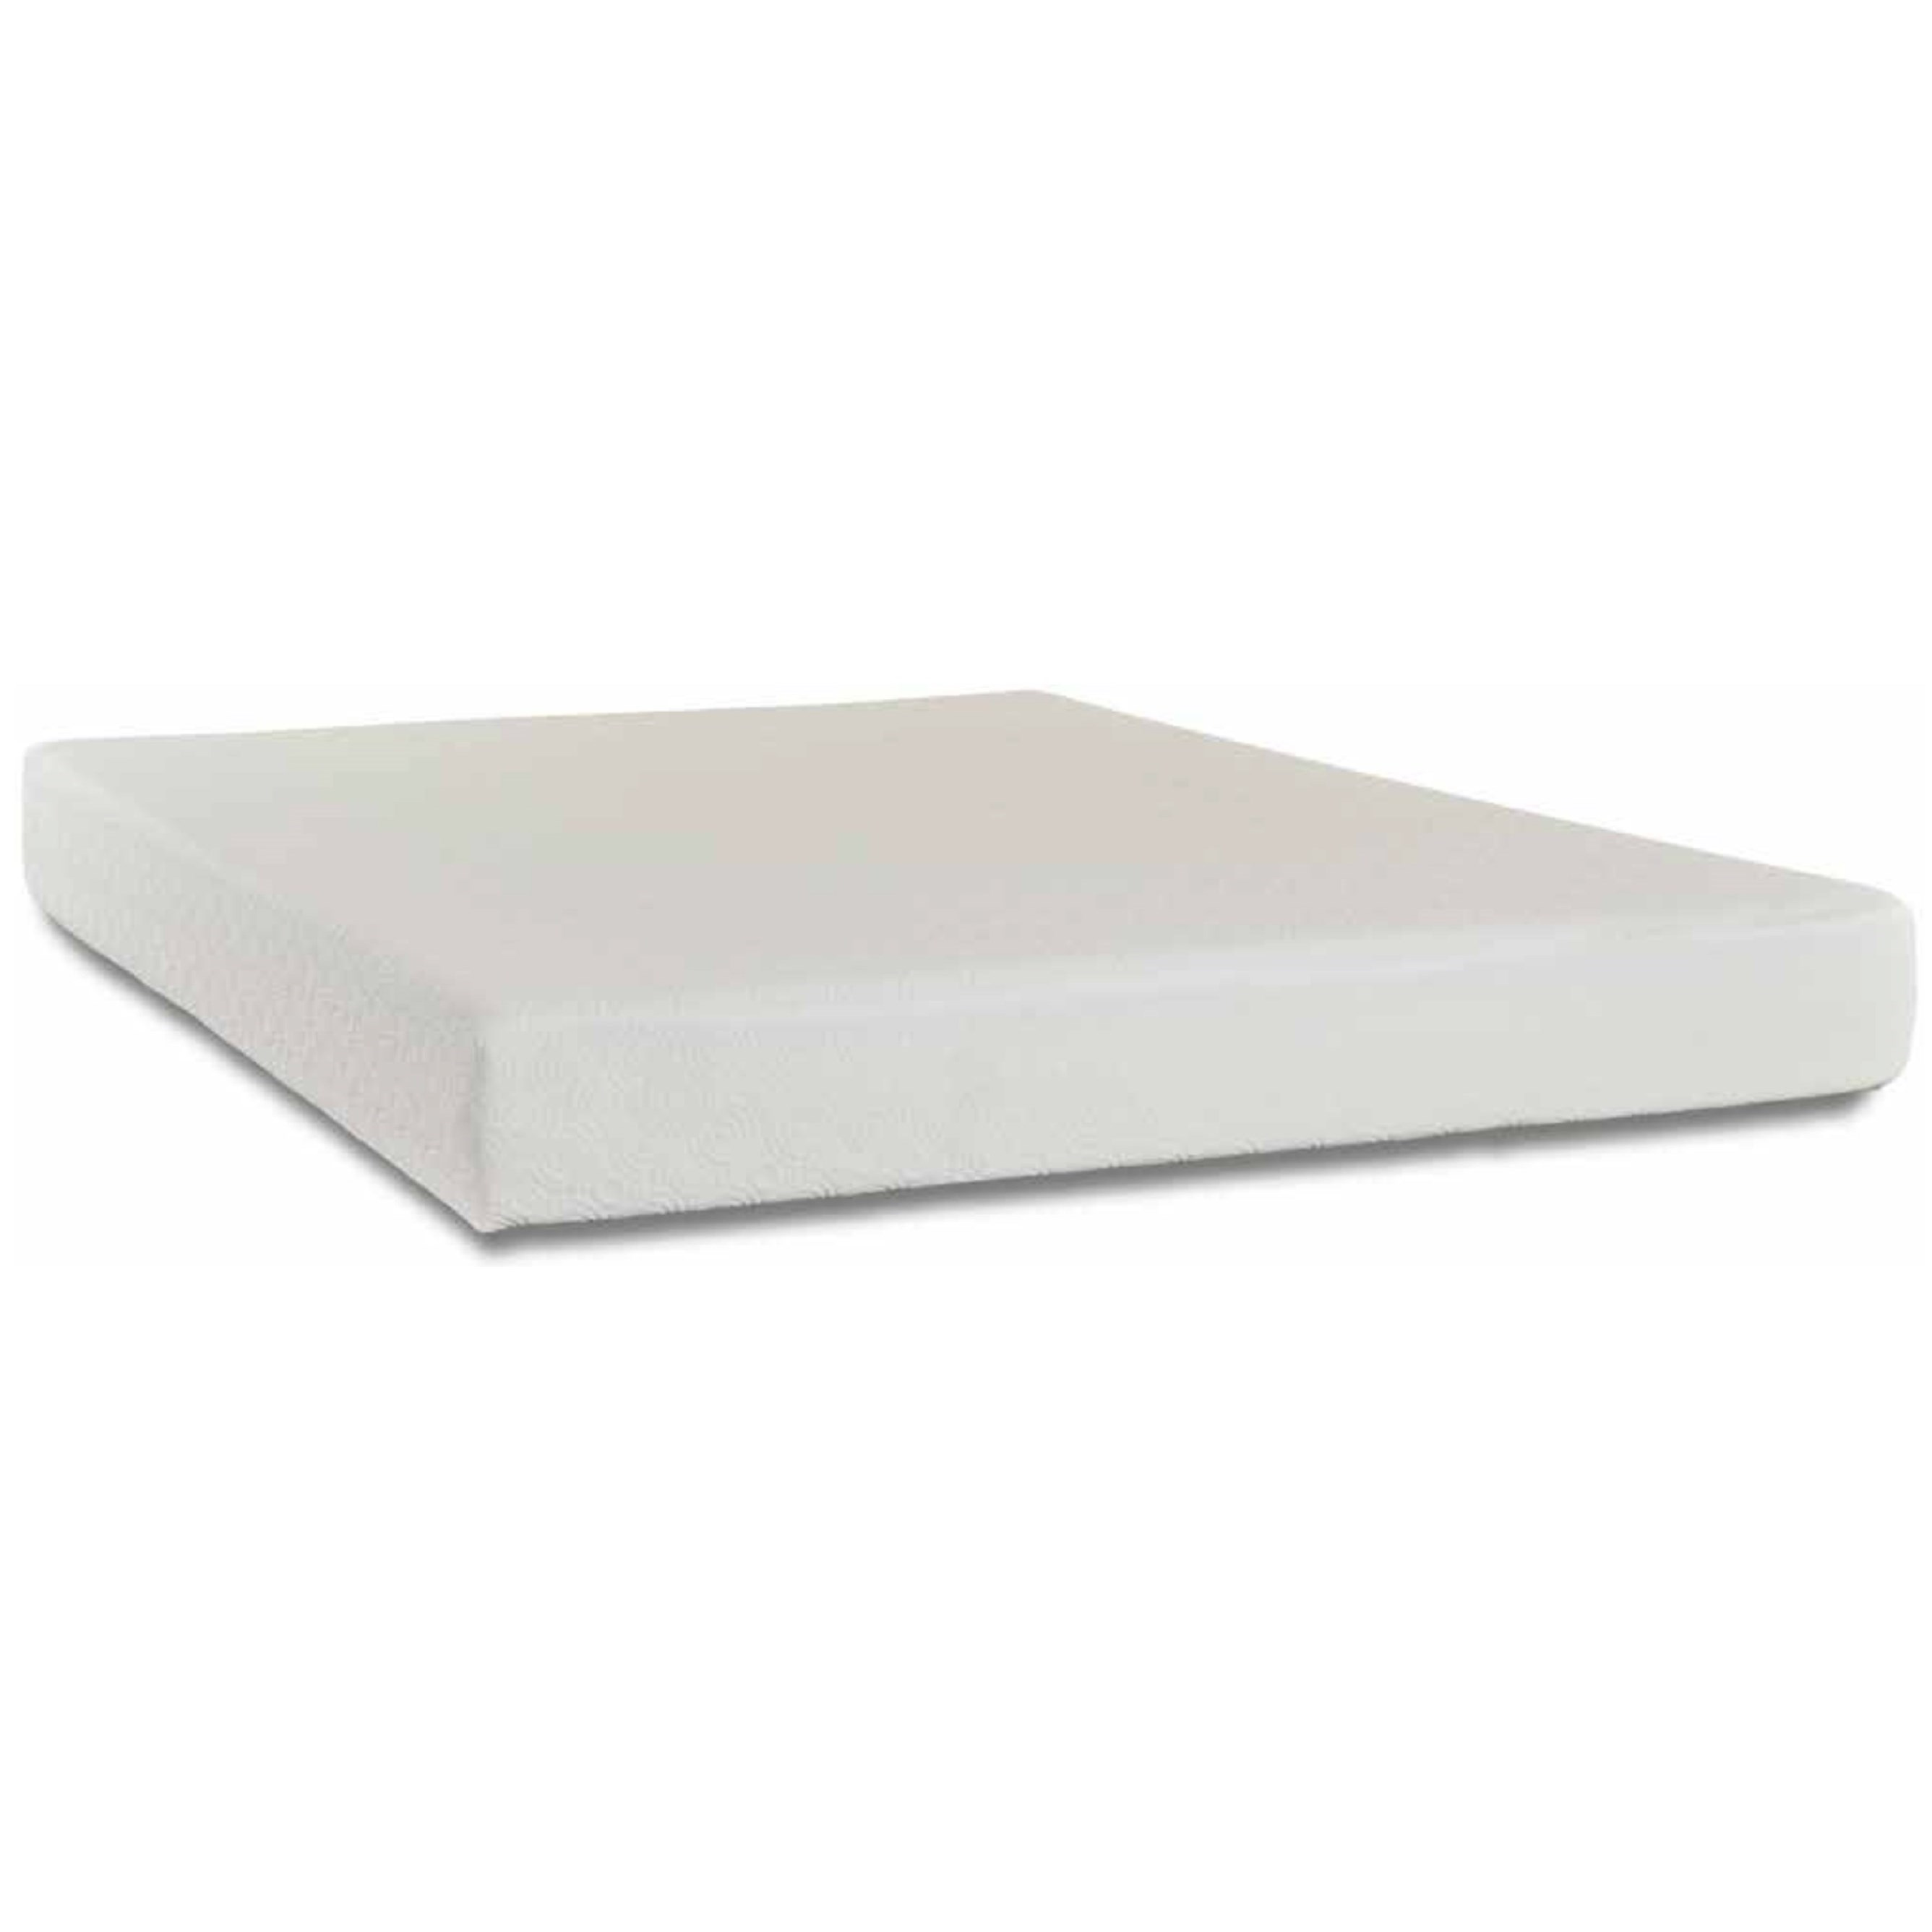 "King 8"" Gel Memory Foam Mattress"